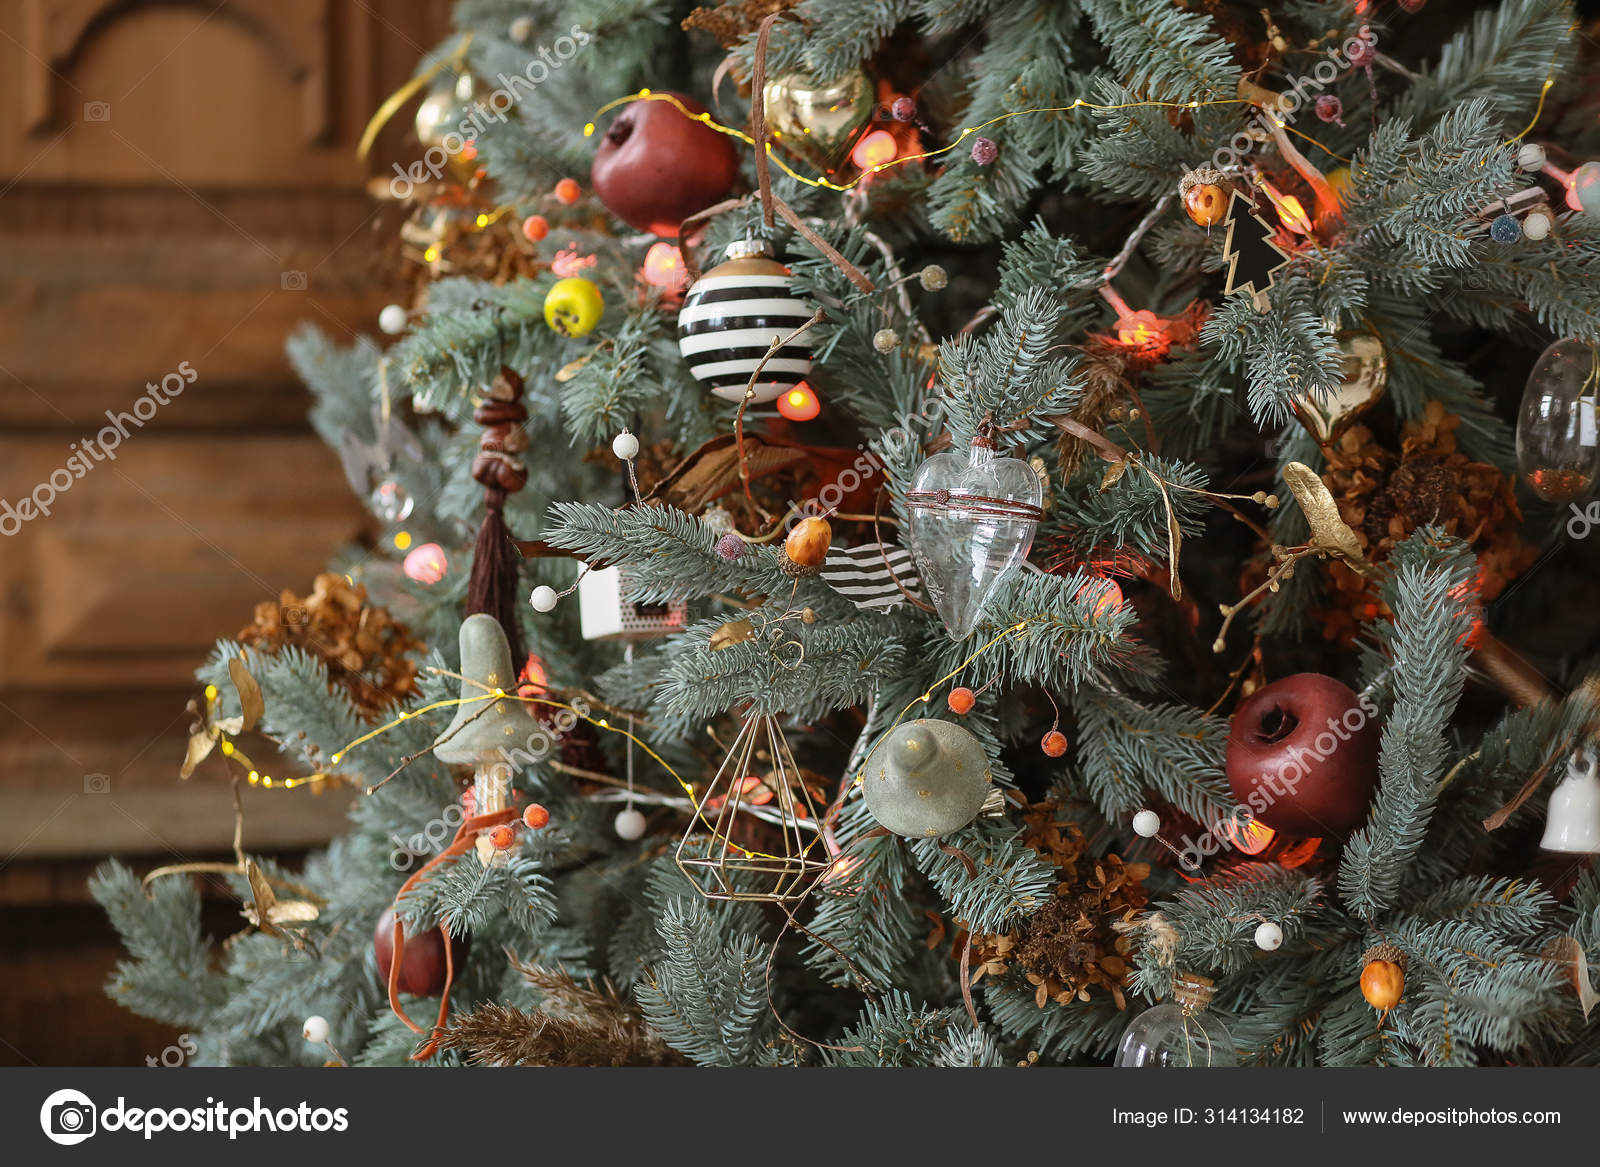 Blue Christmas Tree Decorations Stock Photo Image By C Angelinalubin 314134182